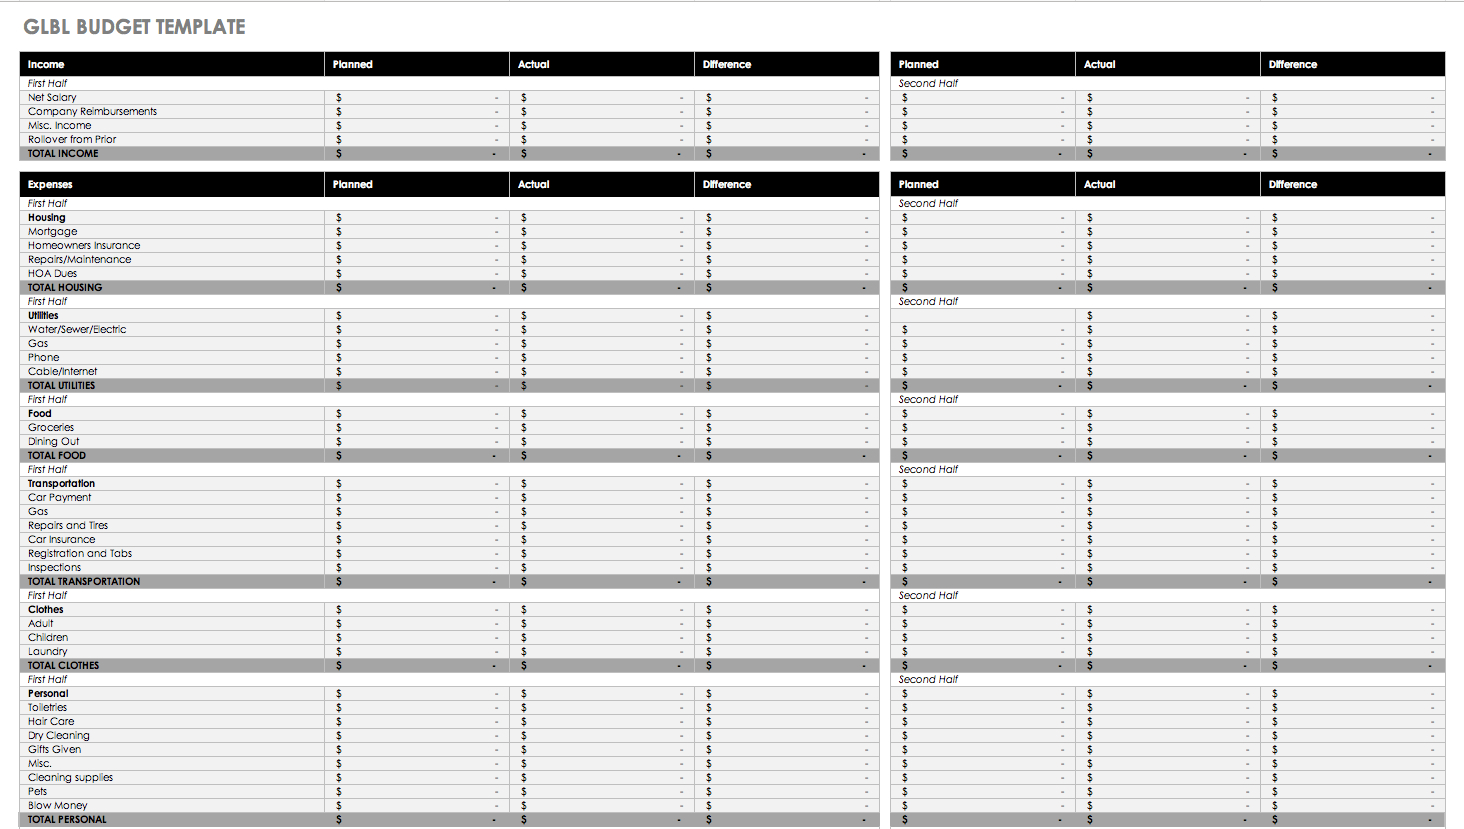 Microsoft Budget Spreadsheet Regarding Free Budget Templates In Excel For Any Use